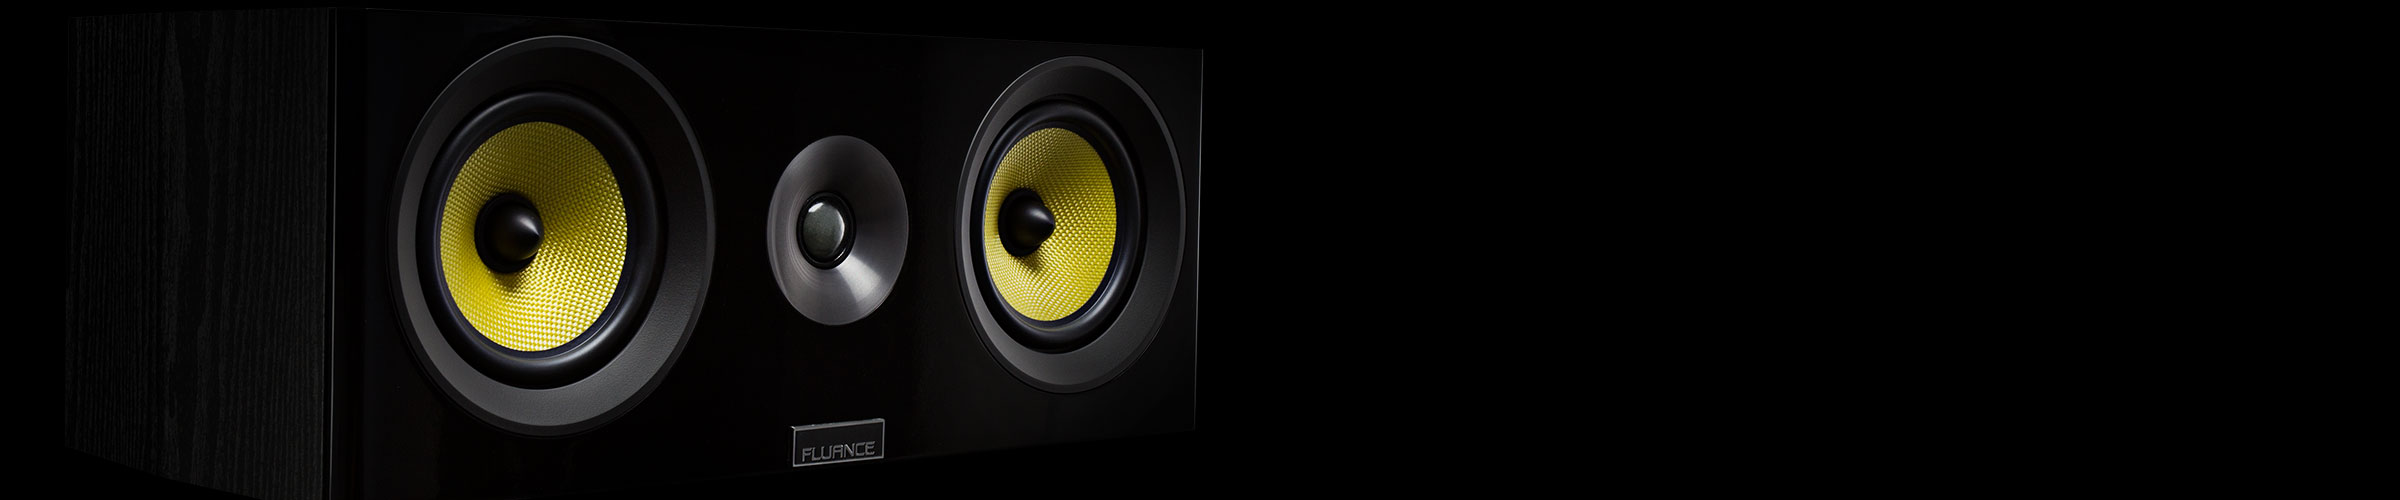 Signature Series Center Channel Speaker sound